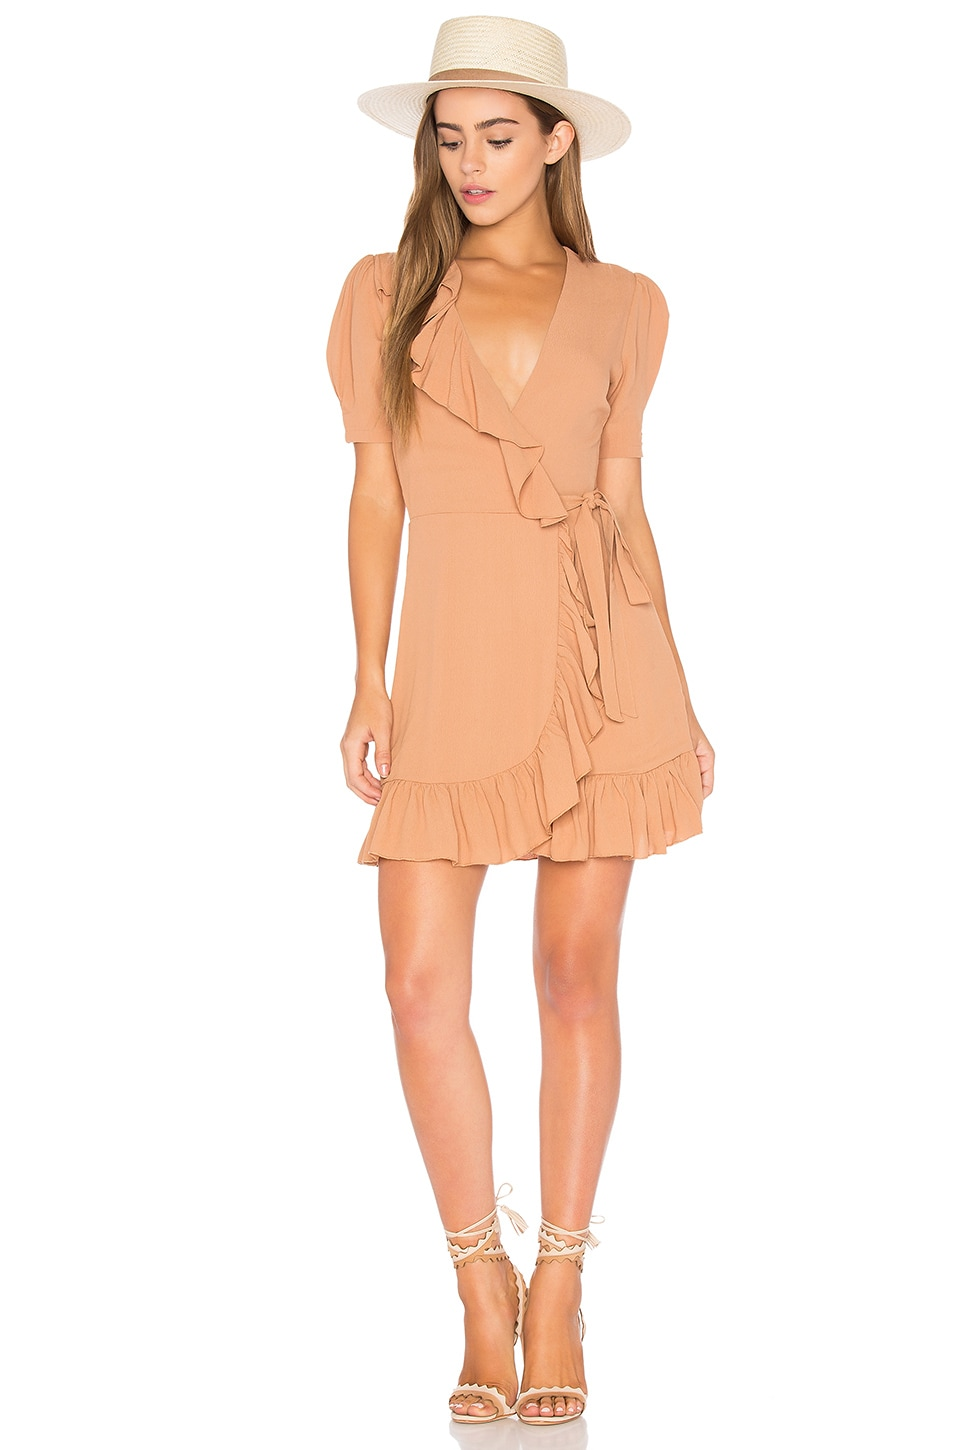 Privacy Please June Dress in Camel